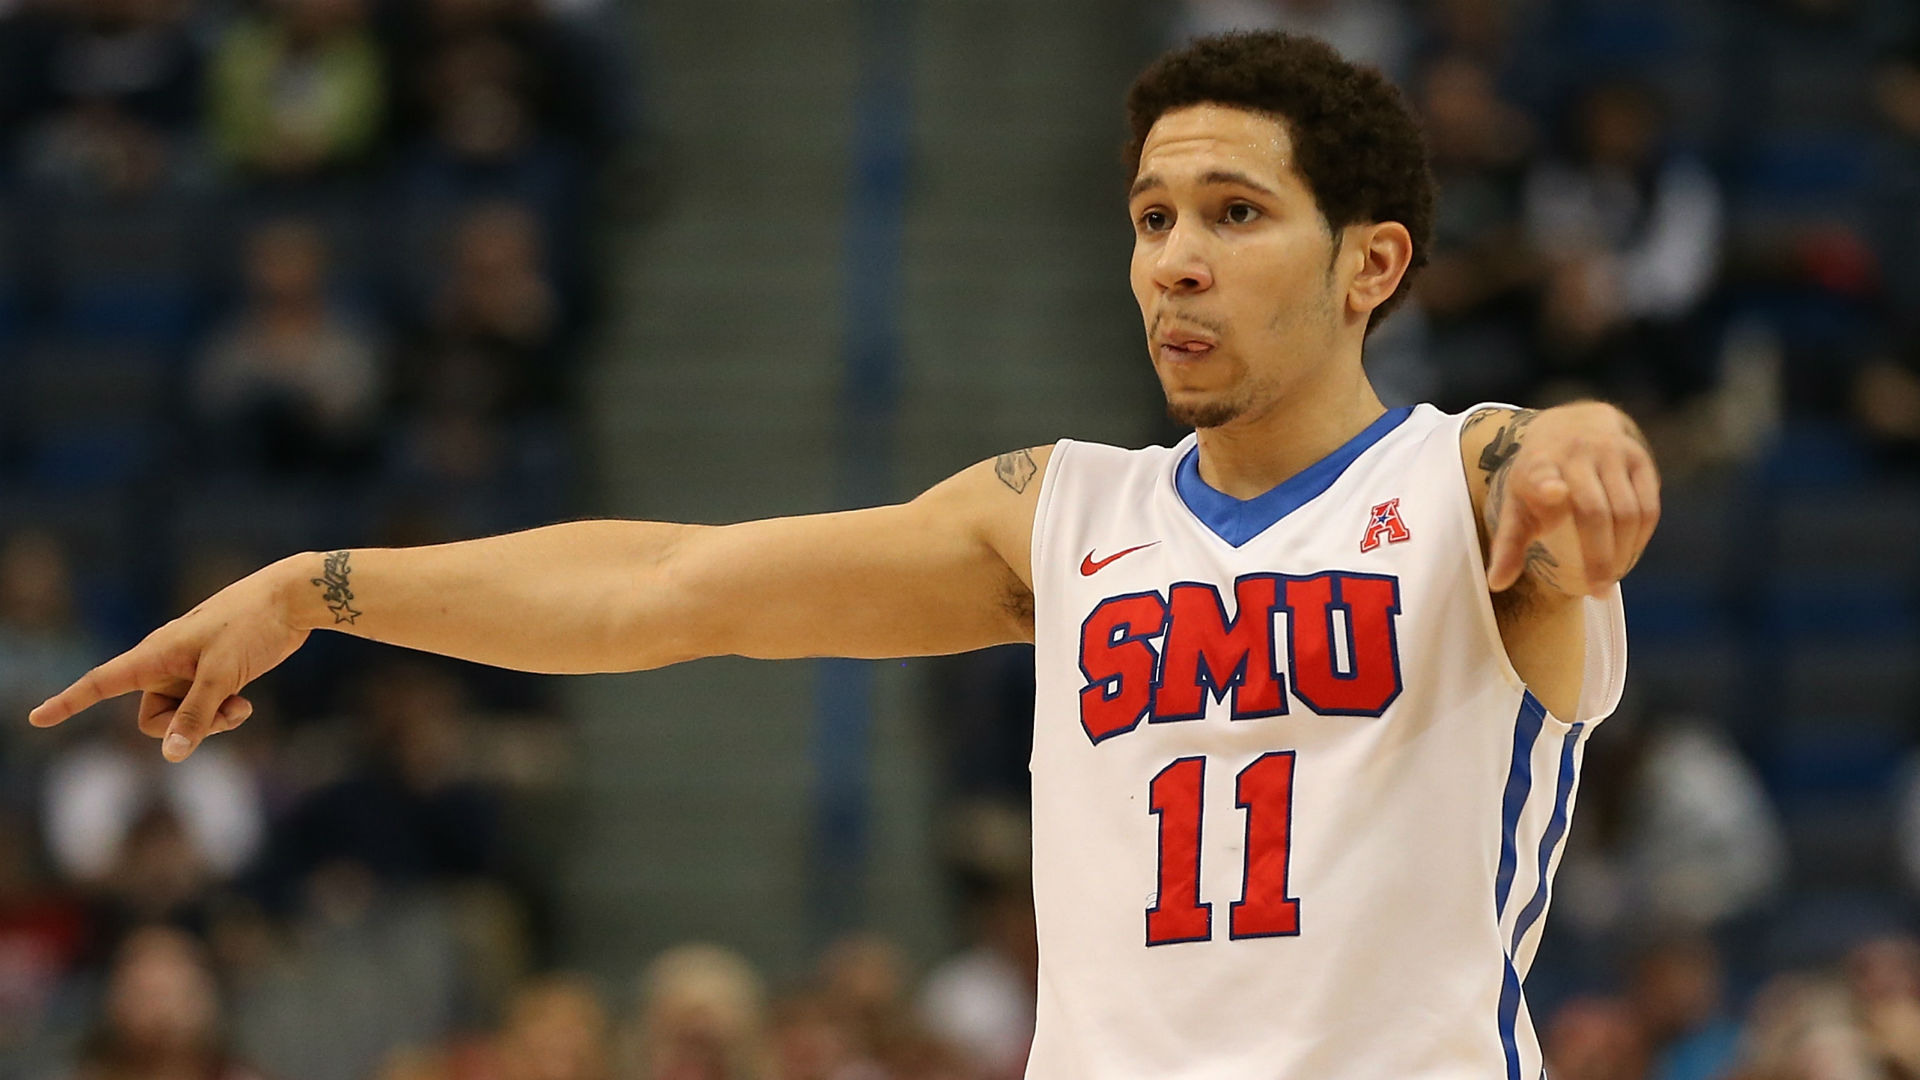 Kansas adds SMU point guard to roster for overseas trip